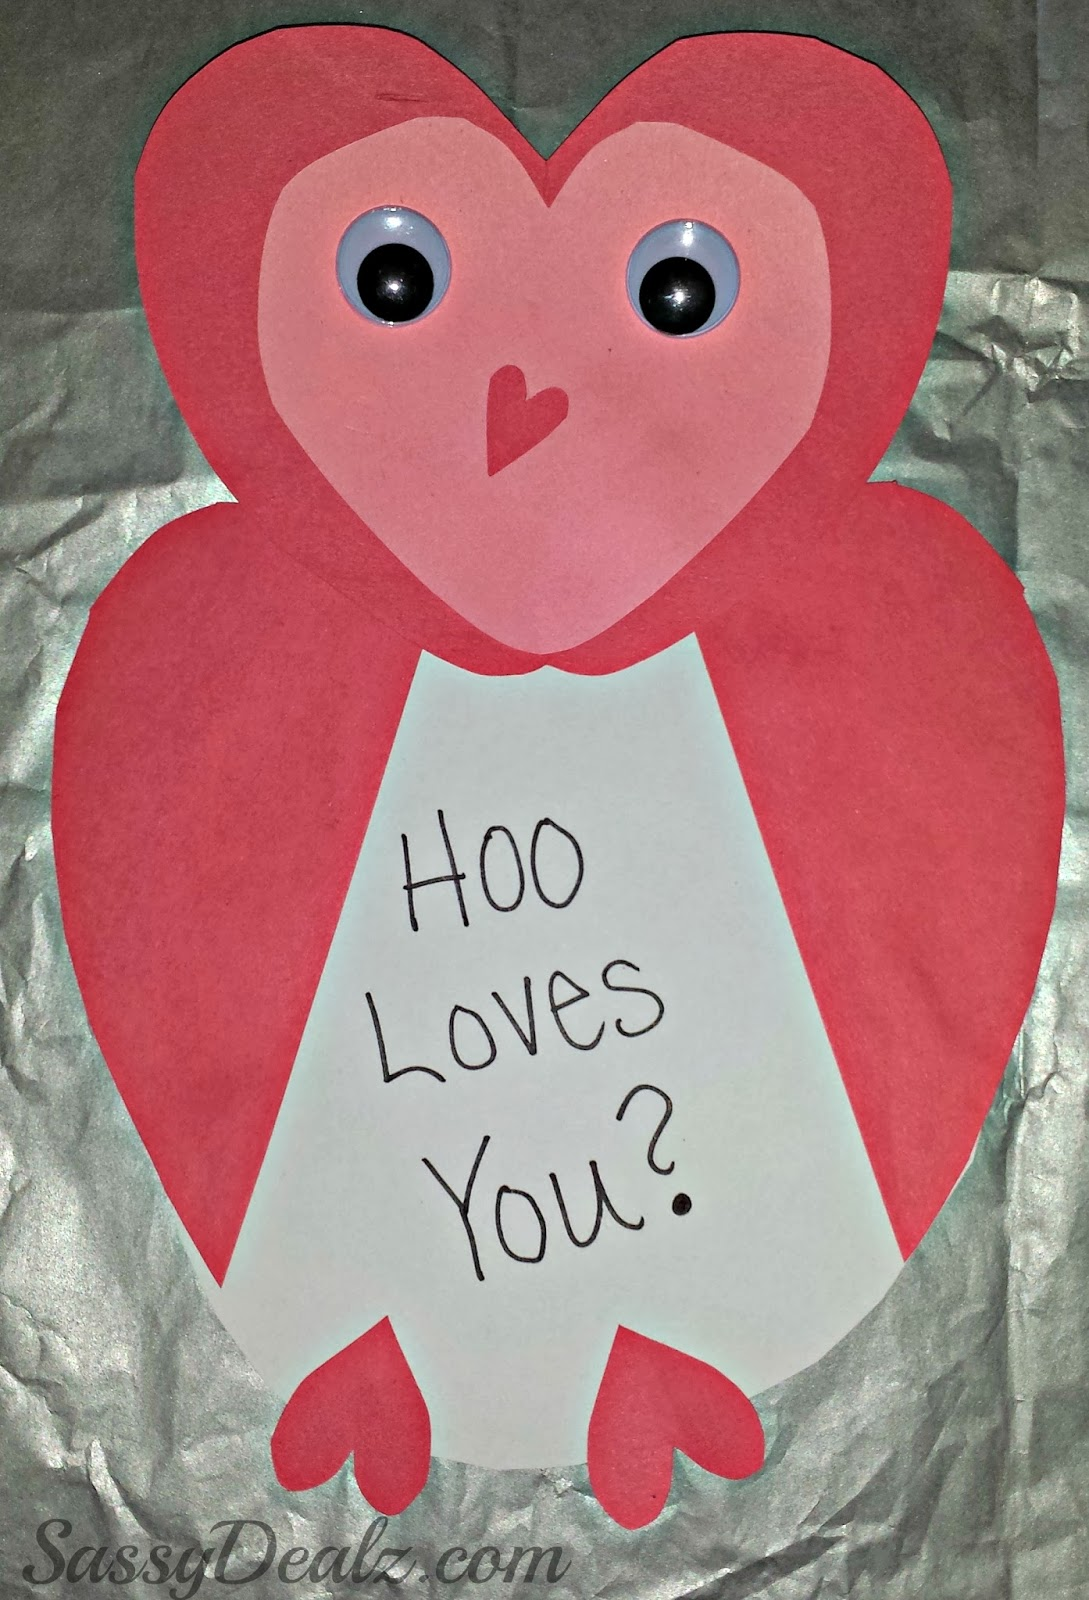 Owl Valentines Day Card Idea For Kids Crafty Morning – How to Make an Awesome Valentines Day Card